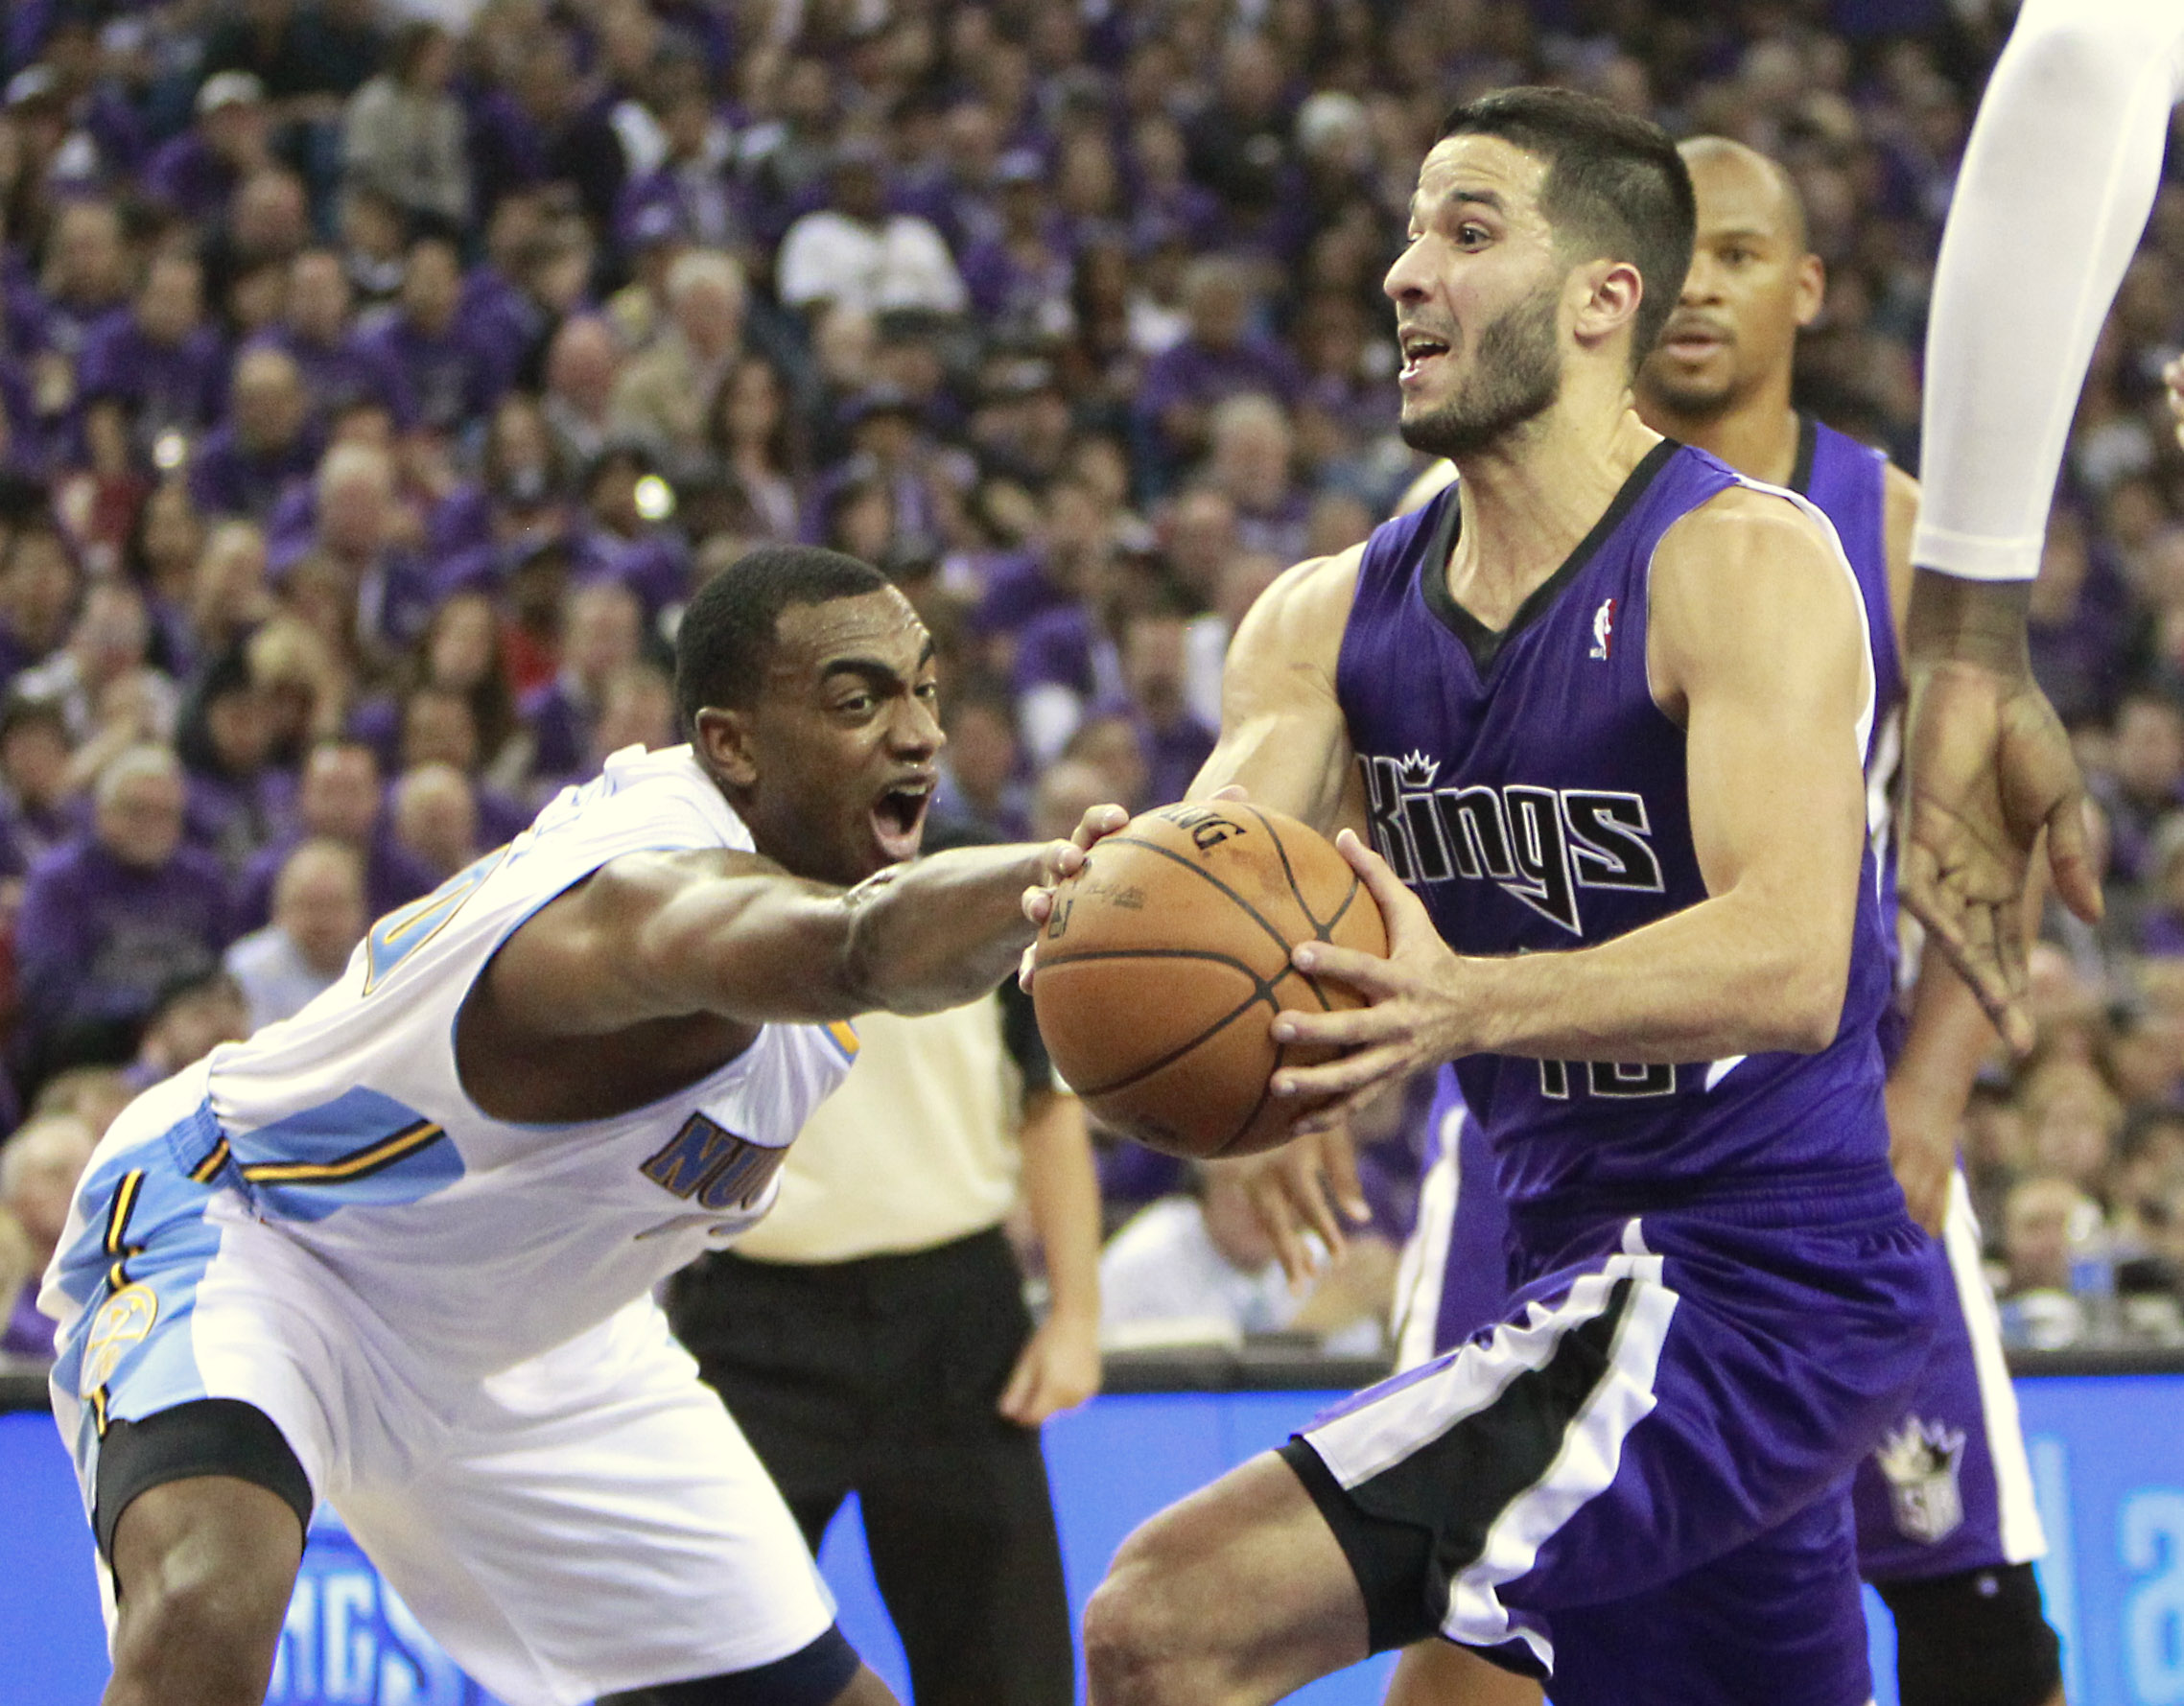 Greivis Vasquez (right) came to the Kings in a trade with the Pelicans in July. (AP)